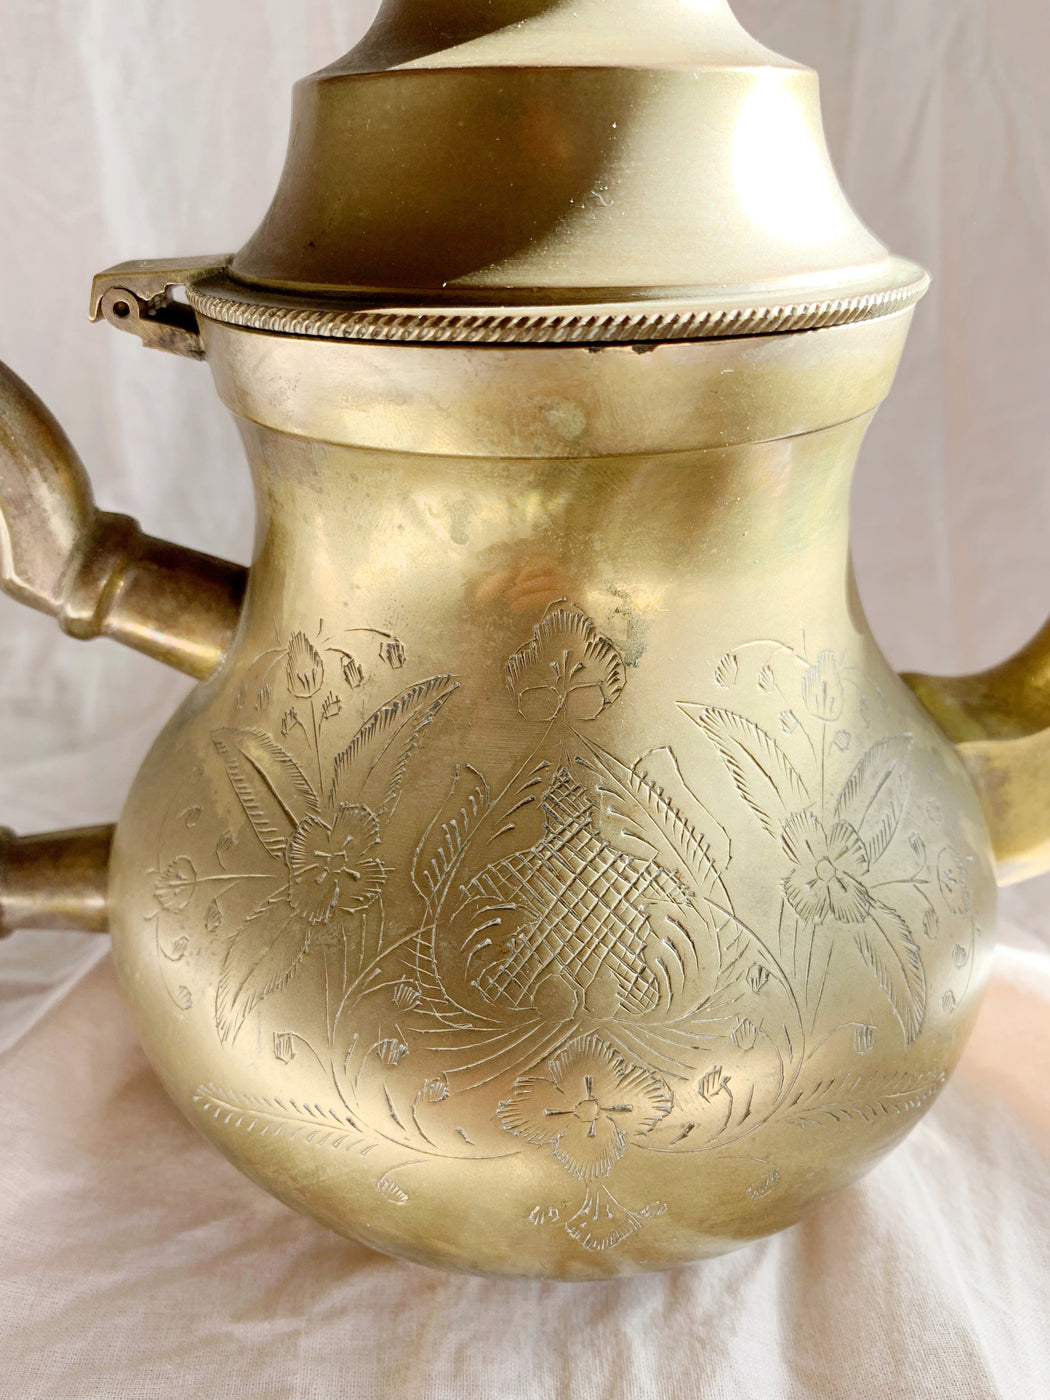 Middle Eastern Brass Teapot